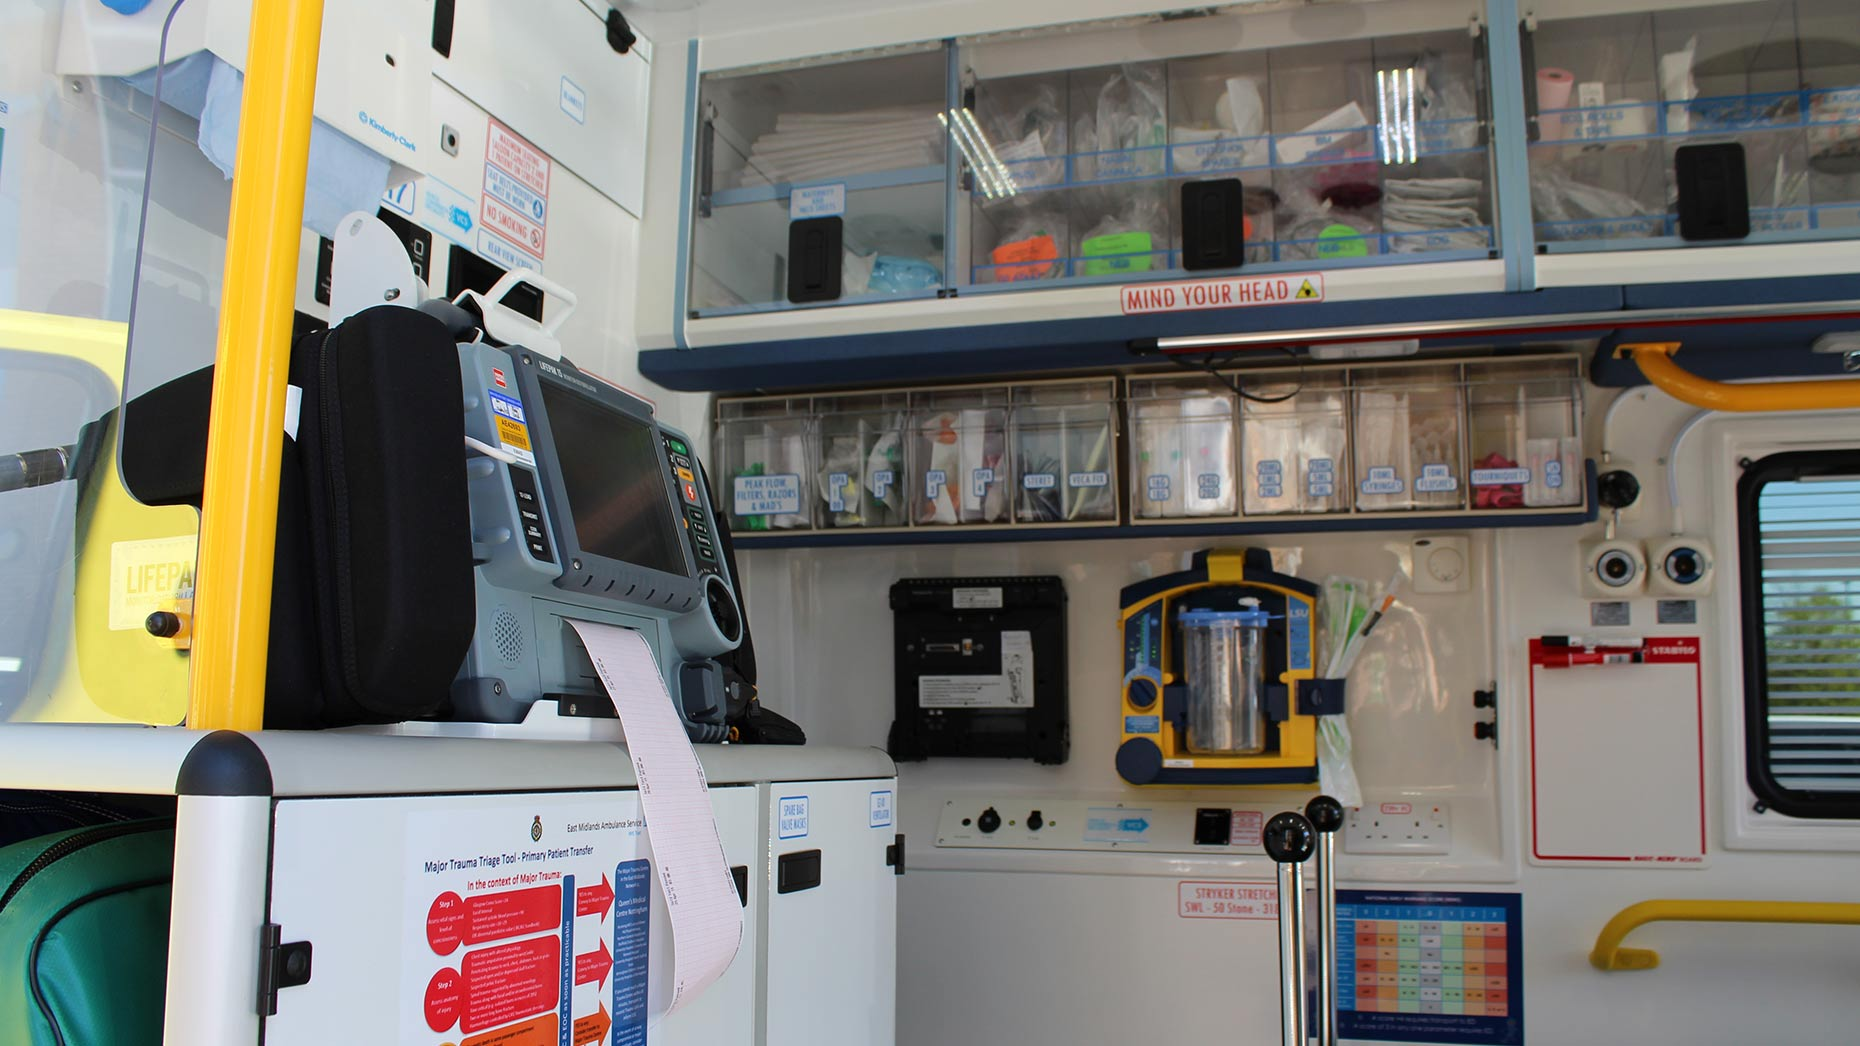 Inside, the new ambulances has the best technology